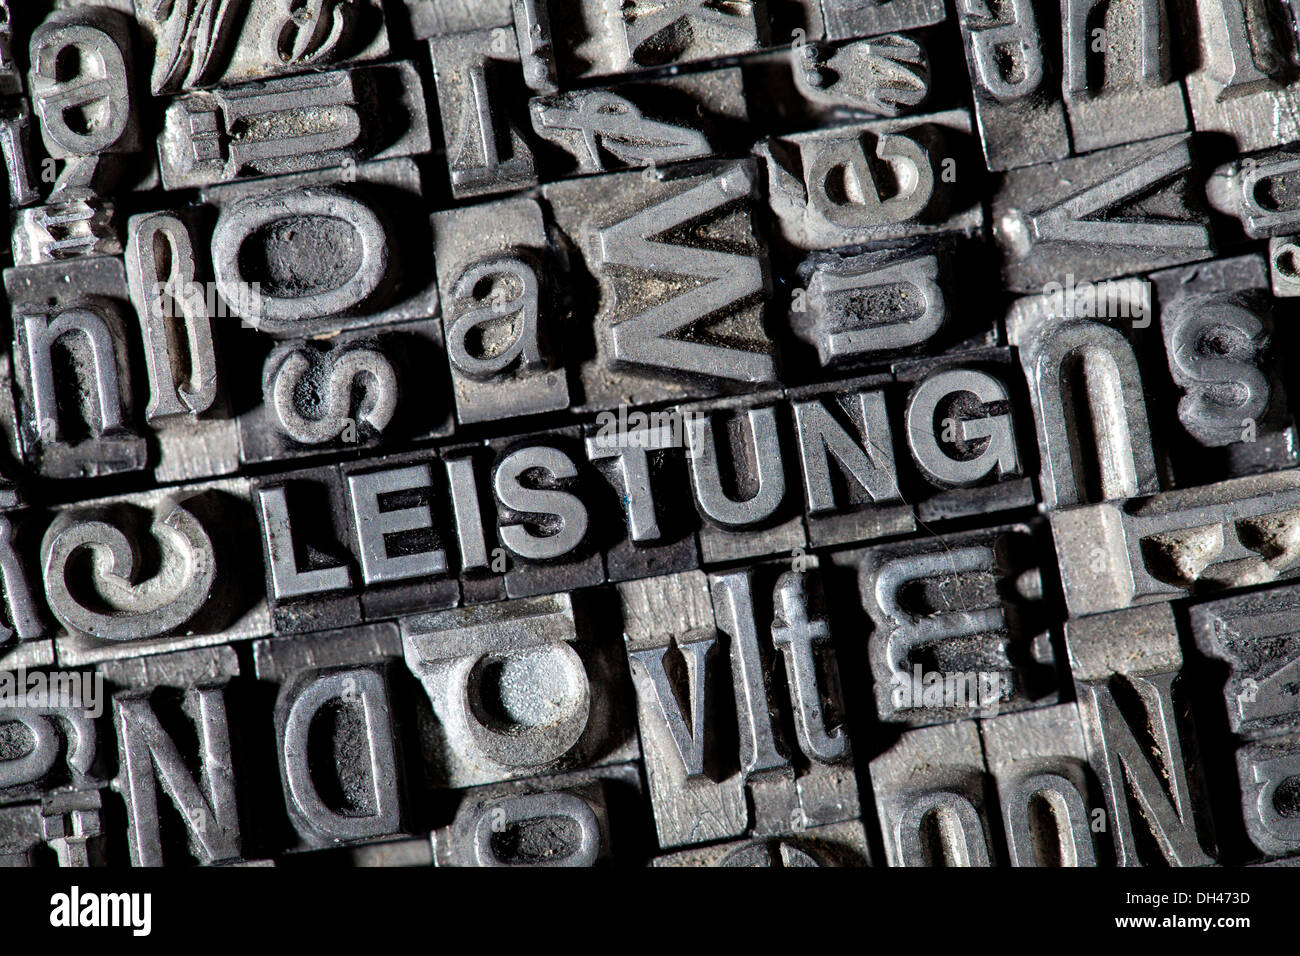 Old lead letters forming the word 'LEISTUNG', German for 'POWER' - Stock Image